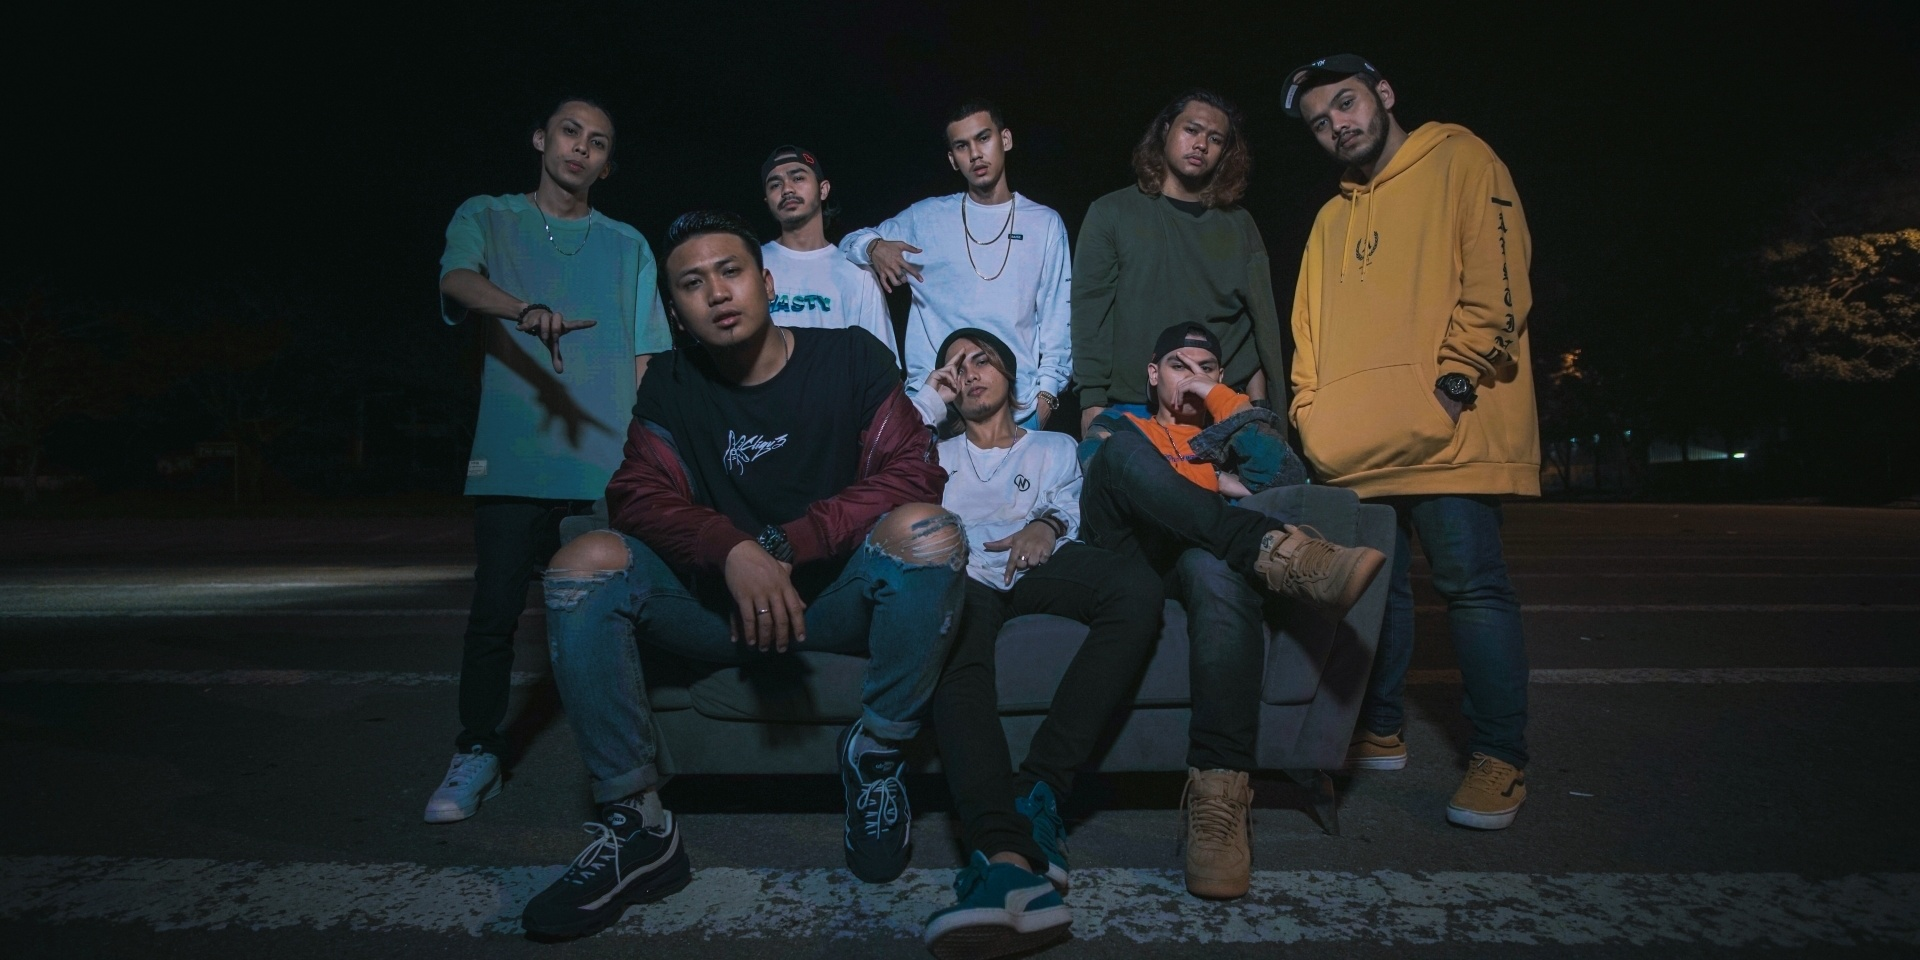 K-Clique to make first Singapore appearance in August